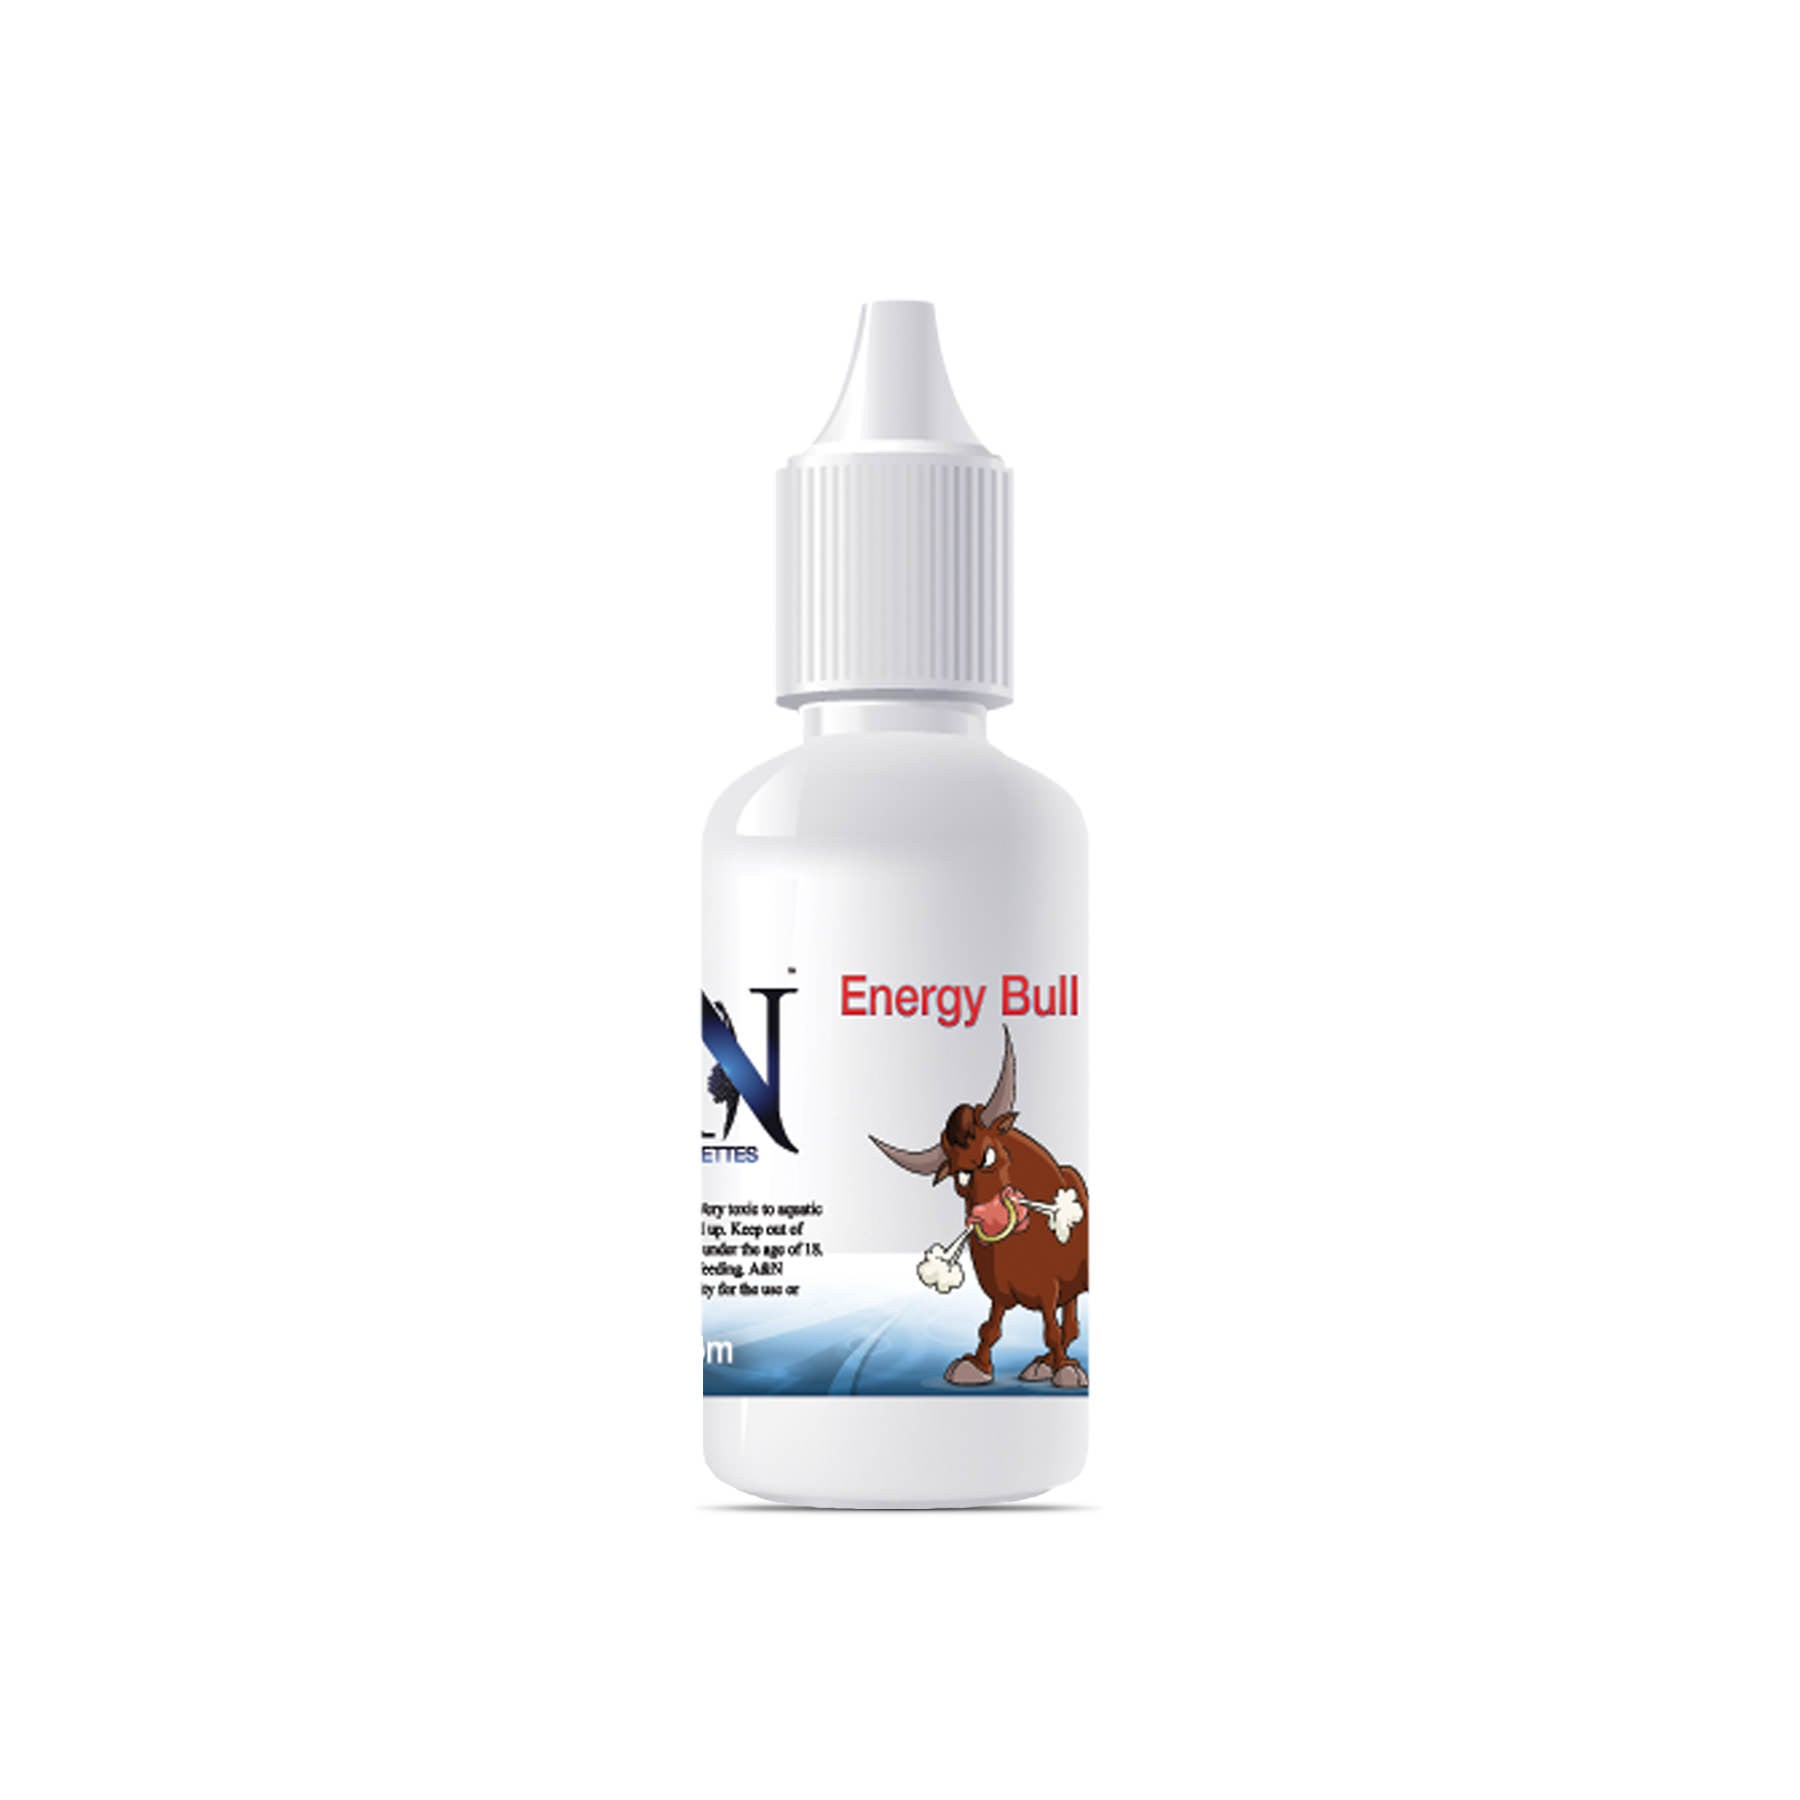 Vape Energy Bull eLiquid Energy Drink